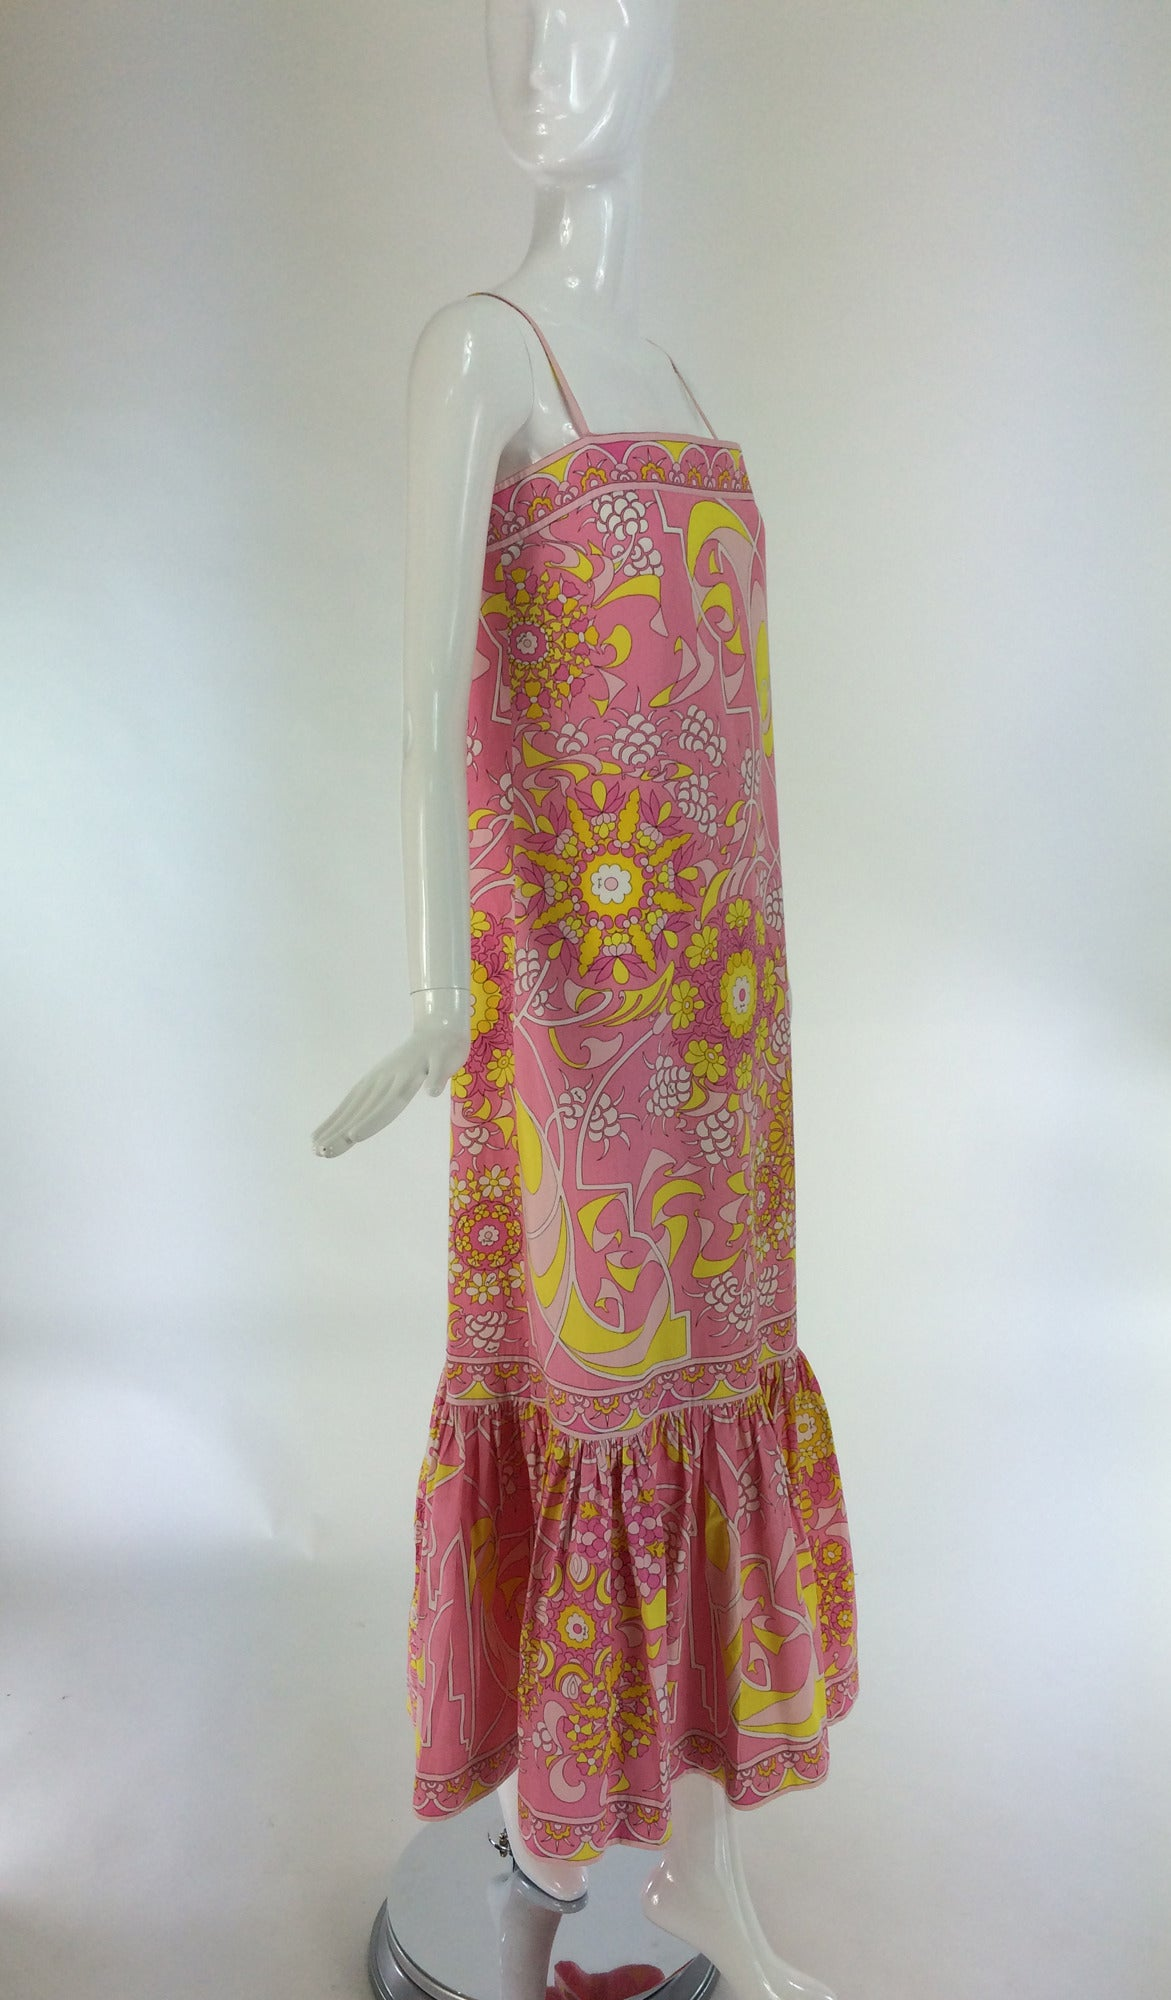 Emilio Pucci printed cotton maxi dress out of the ordinary design 1960s In Excellent Condition For Sale In West Palm Beach, FL